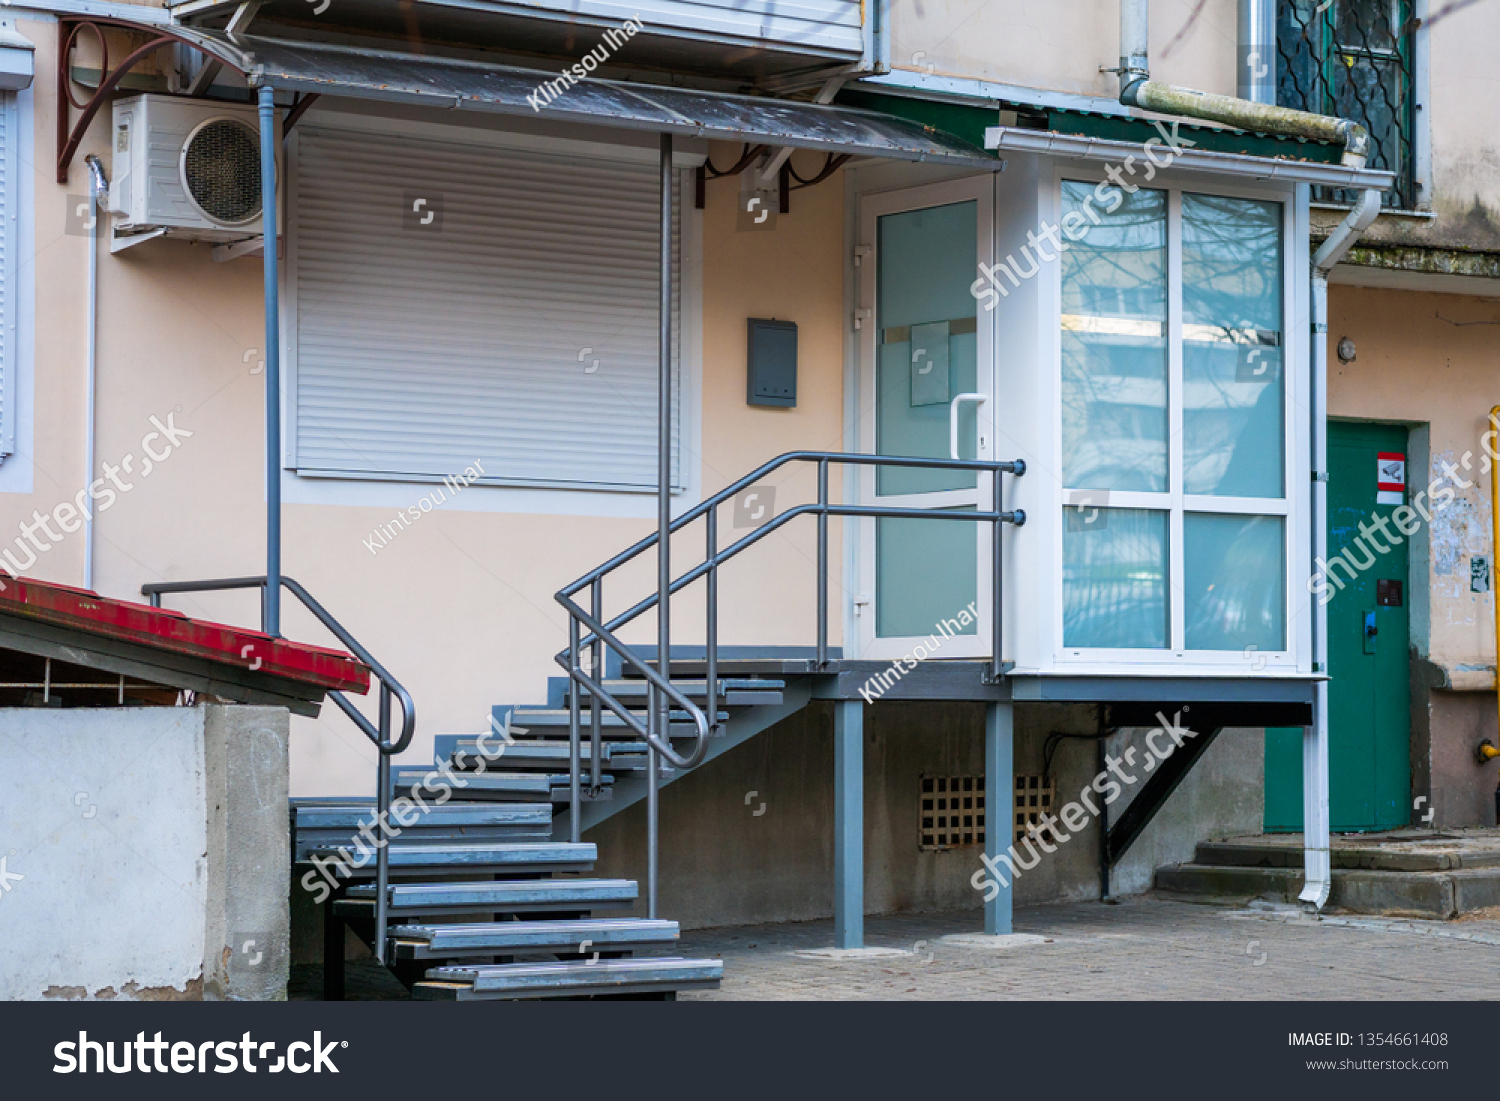 Design Entrance Small Office Ladder On Miscellaneous Stock Image 1354661408